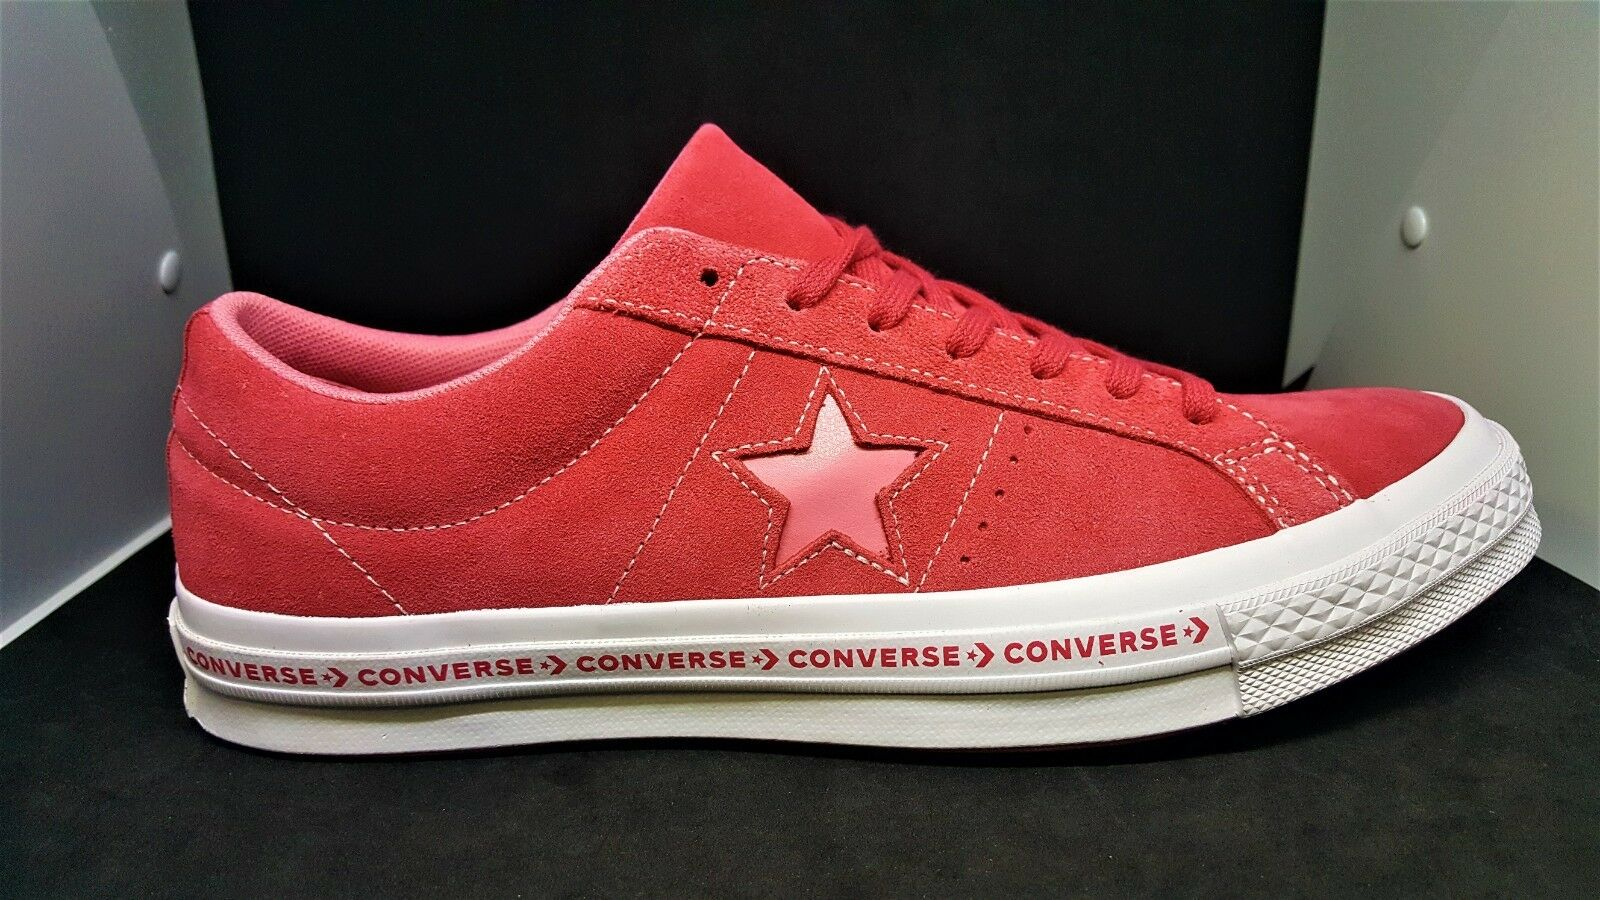 Converse Converse Converse  One Star OX Pinstripe Low Paradise rosa Uomo sz 9.5 159815C 77bfcf